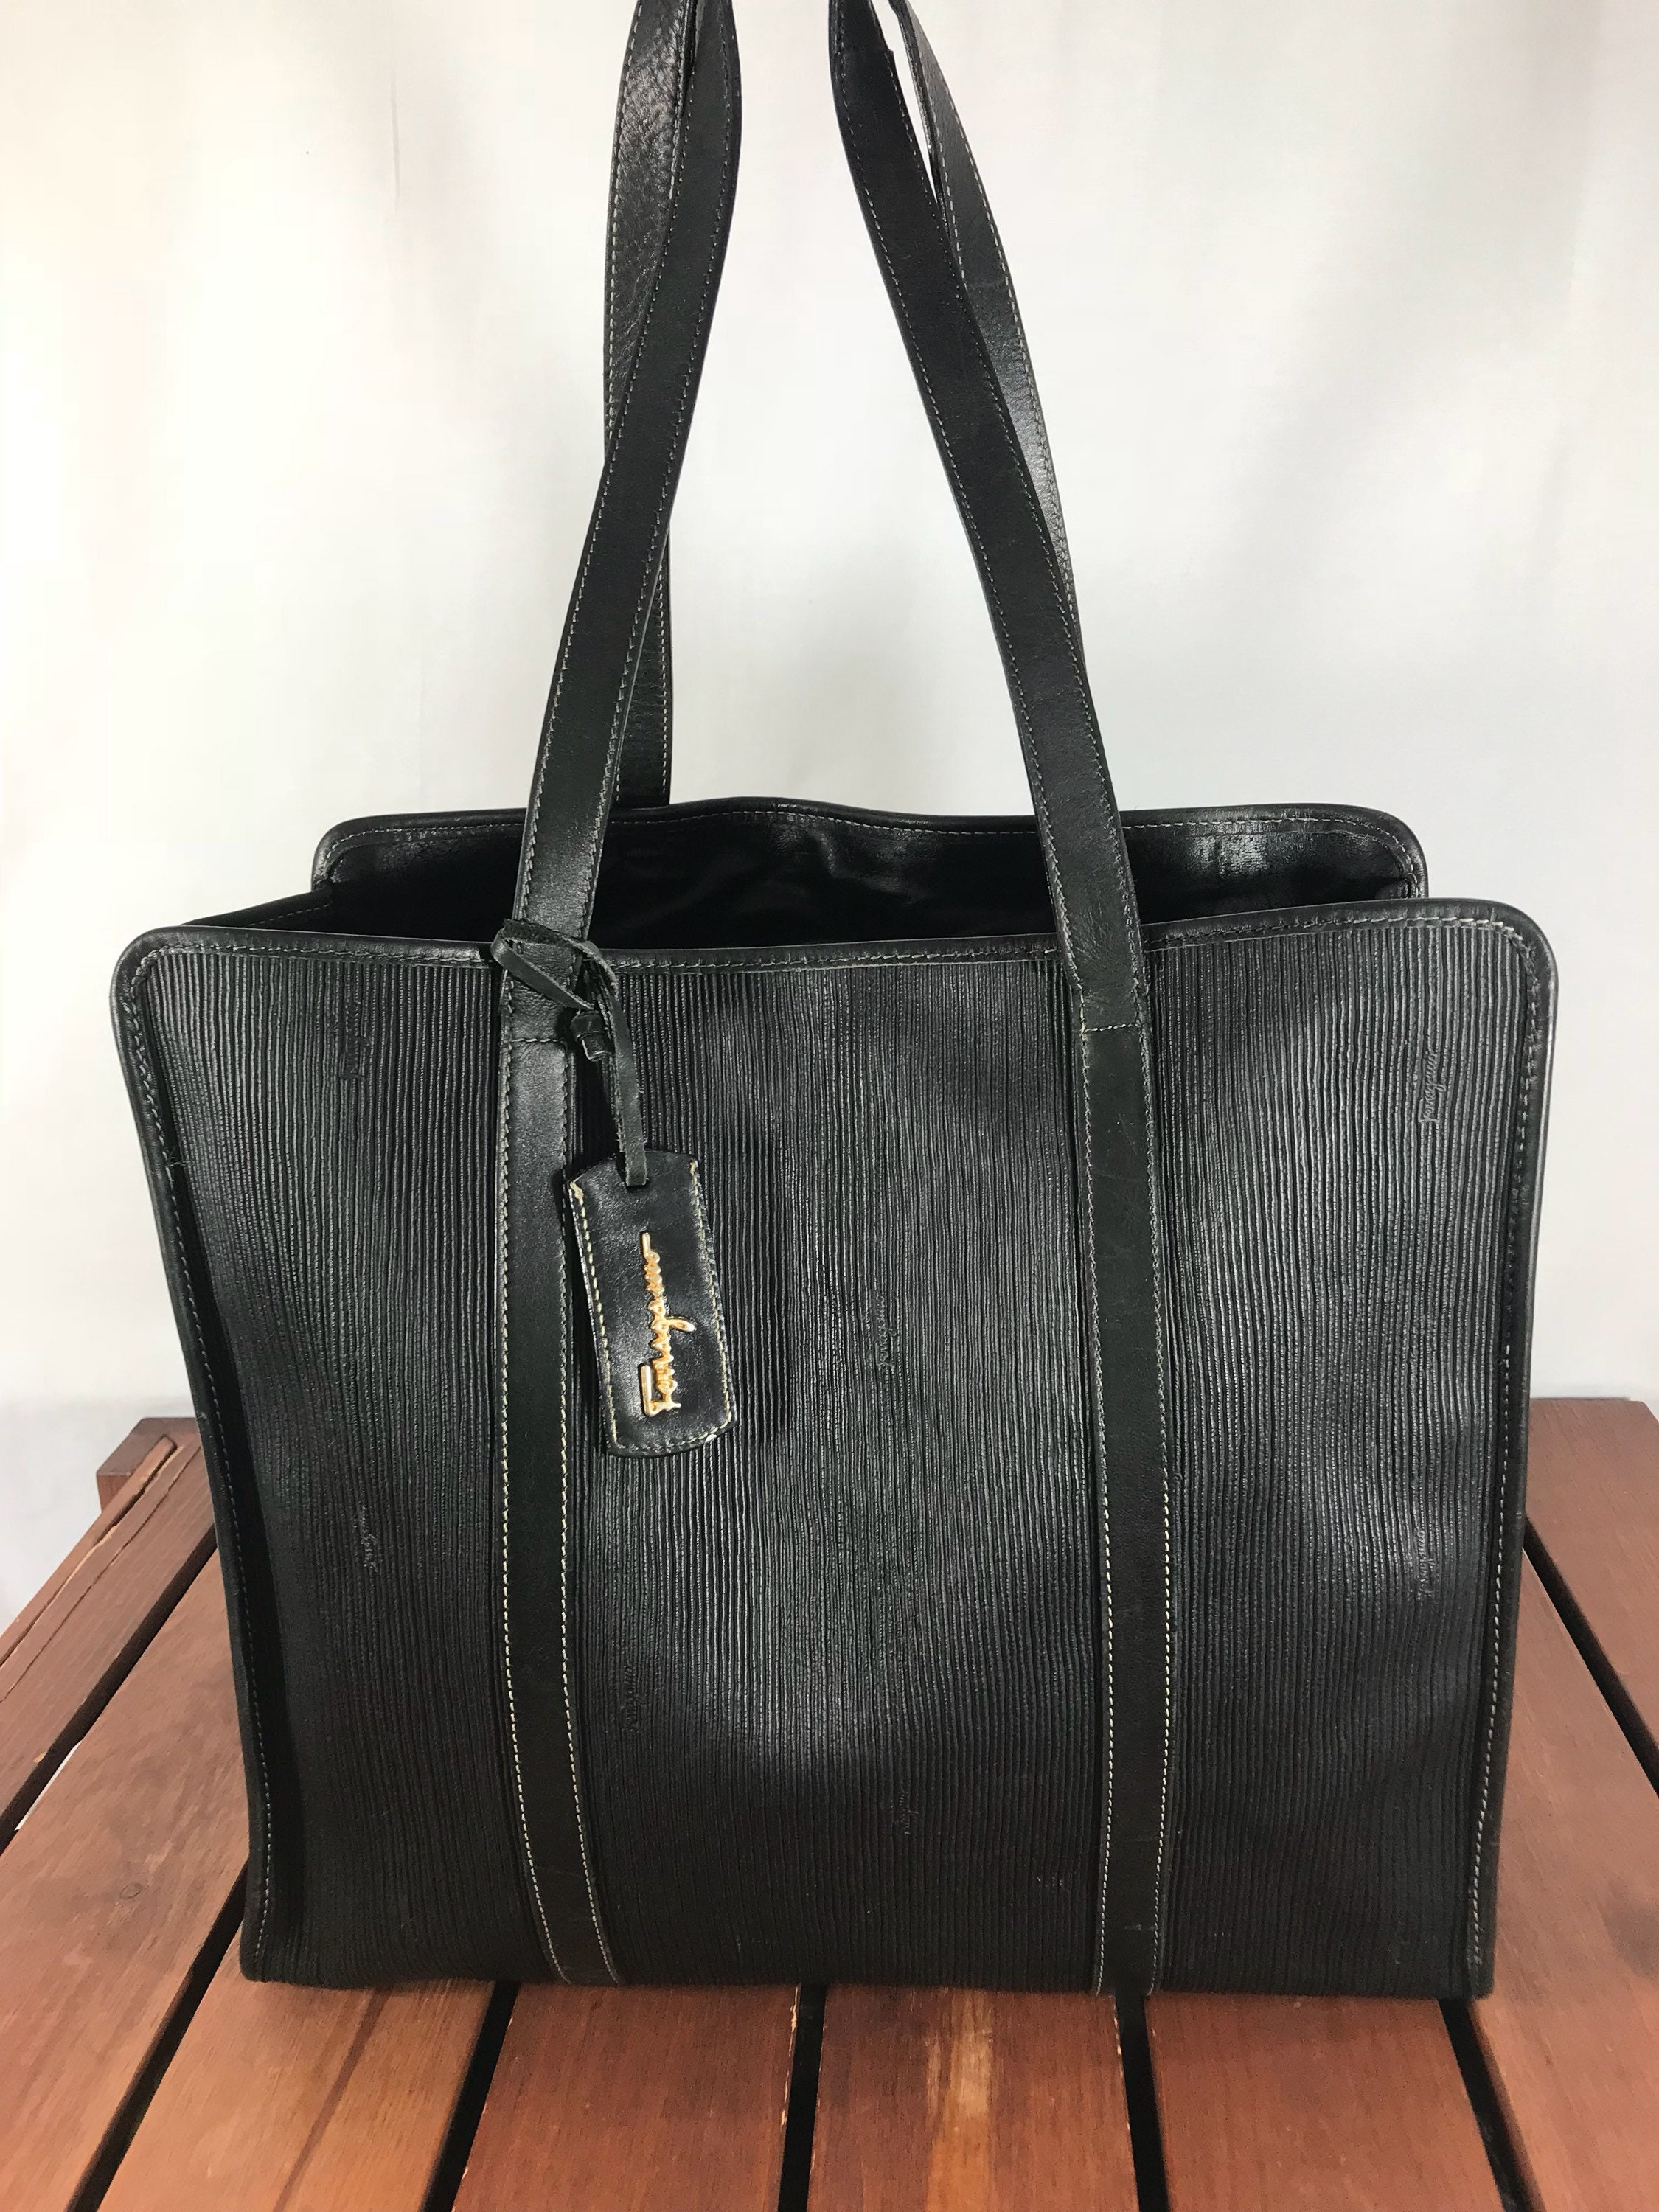 SALVATORE FERRAGAMO Great Vintage Authentic Black Coated Canvas Vinyl and  Leather Trim Satchel Shoulder Bag Made in Italy 4d0be1b214ba1